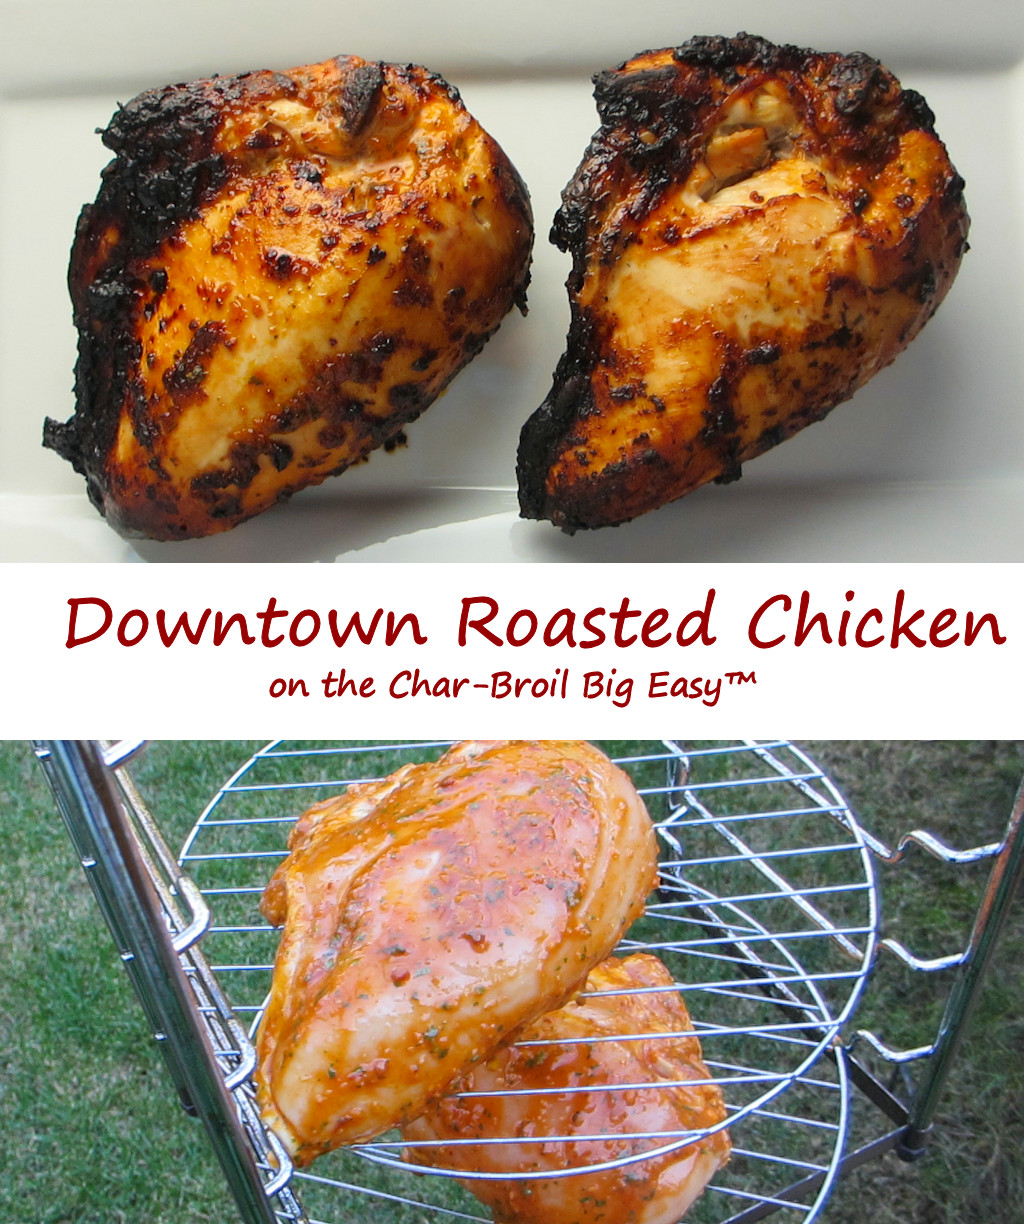 downtown-roasted-chicken-on-the-char-broil-big-easy